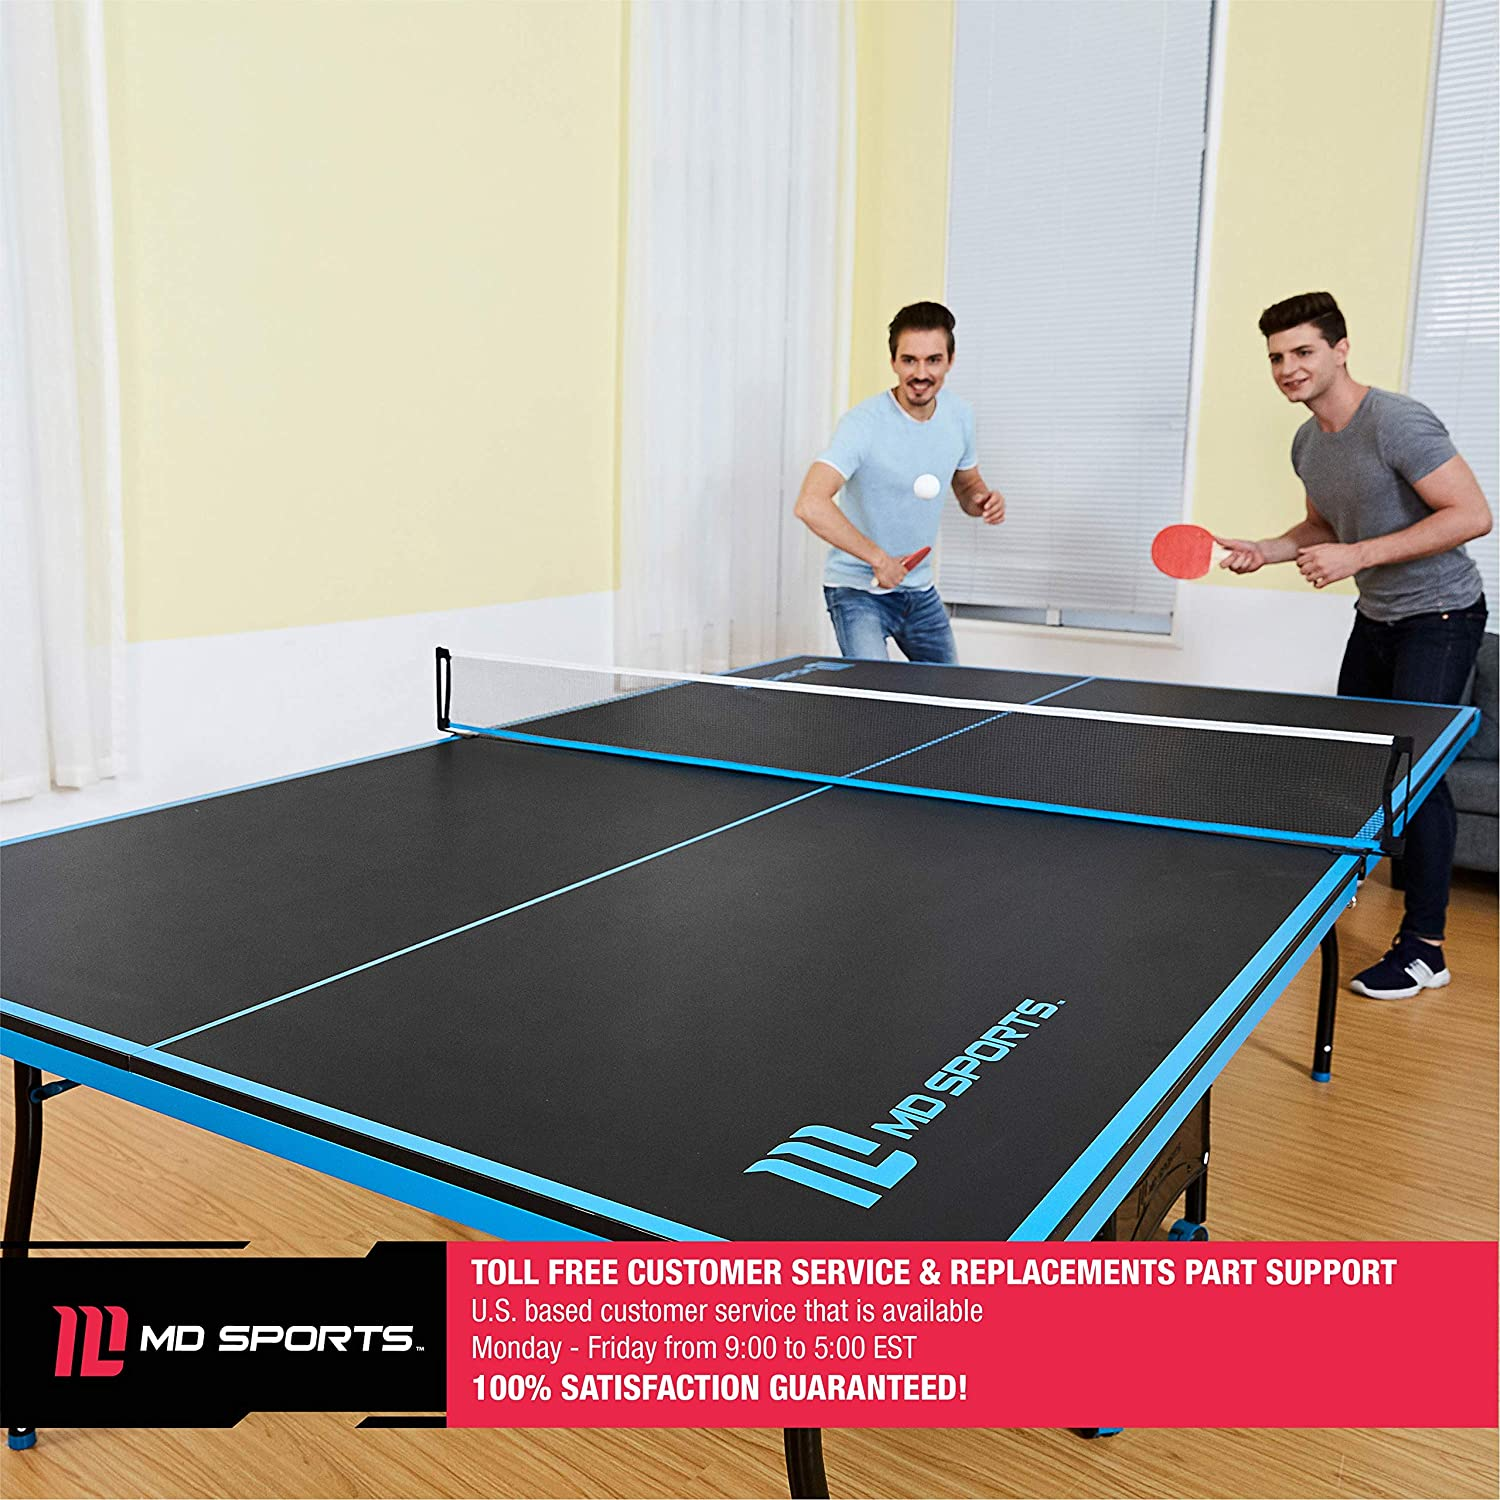 Same and different between indoor and outdoor table tennis tables